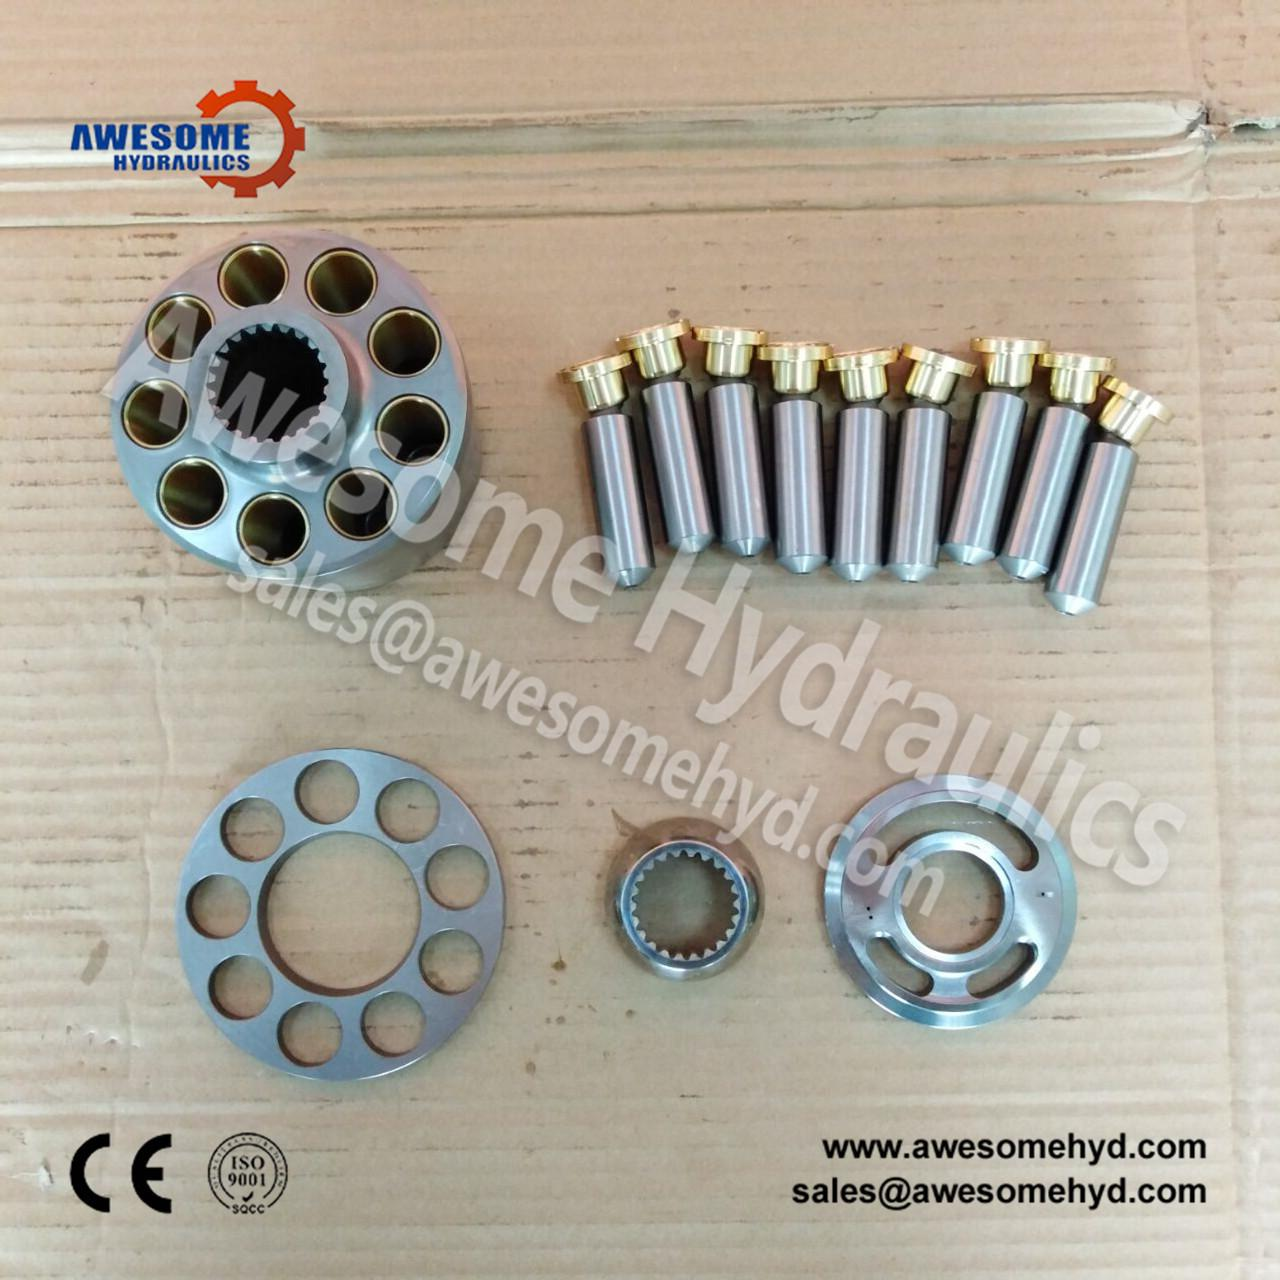 Repair Kit Uchida Rexroth Hydraulic Pump Parts A11VO40 A11VO60 A11VO75 A11VO95 A11VO130 A11VO145 Manufactures